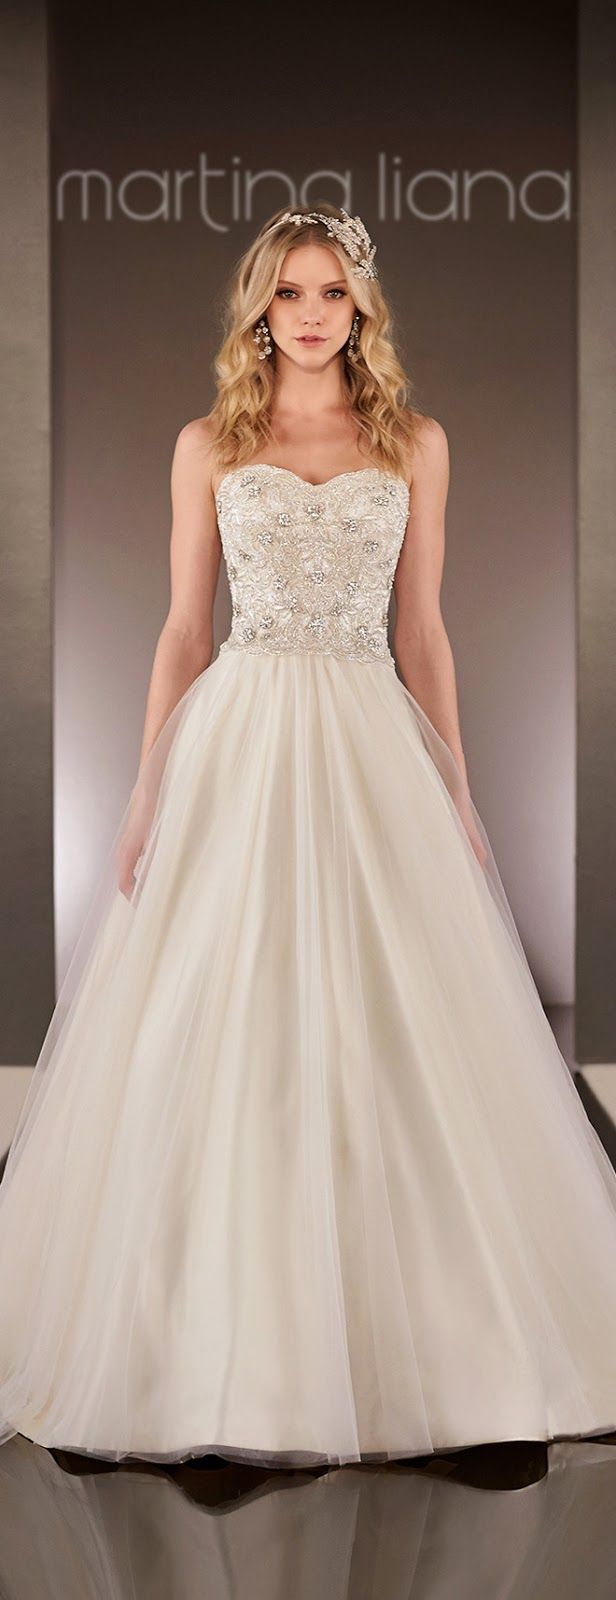 The 710 best Ceremony Bridal Look images on Pinterest | Short ...